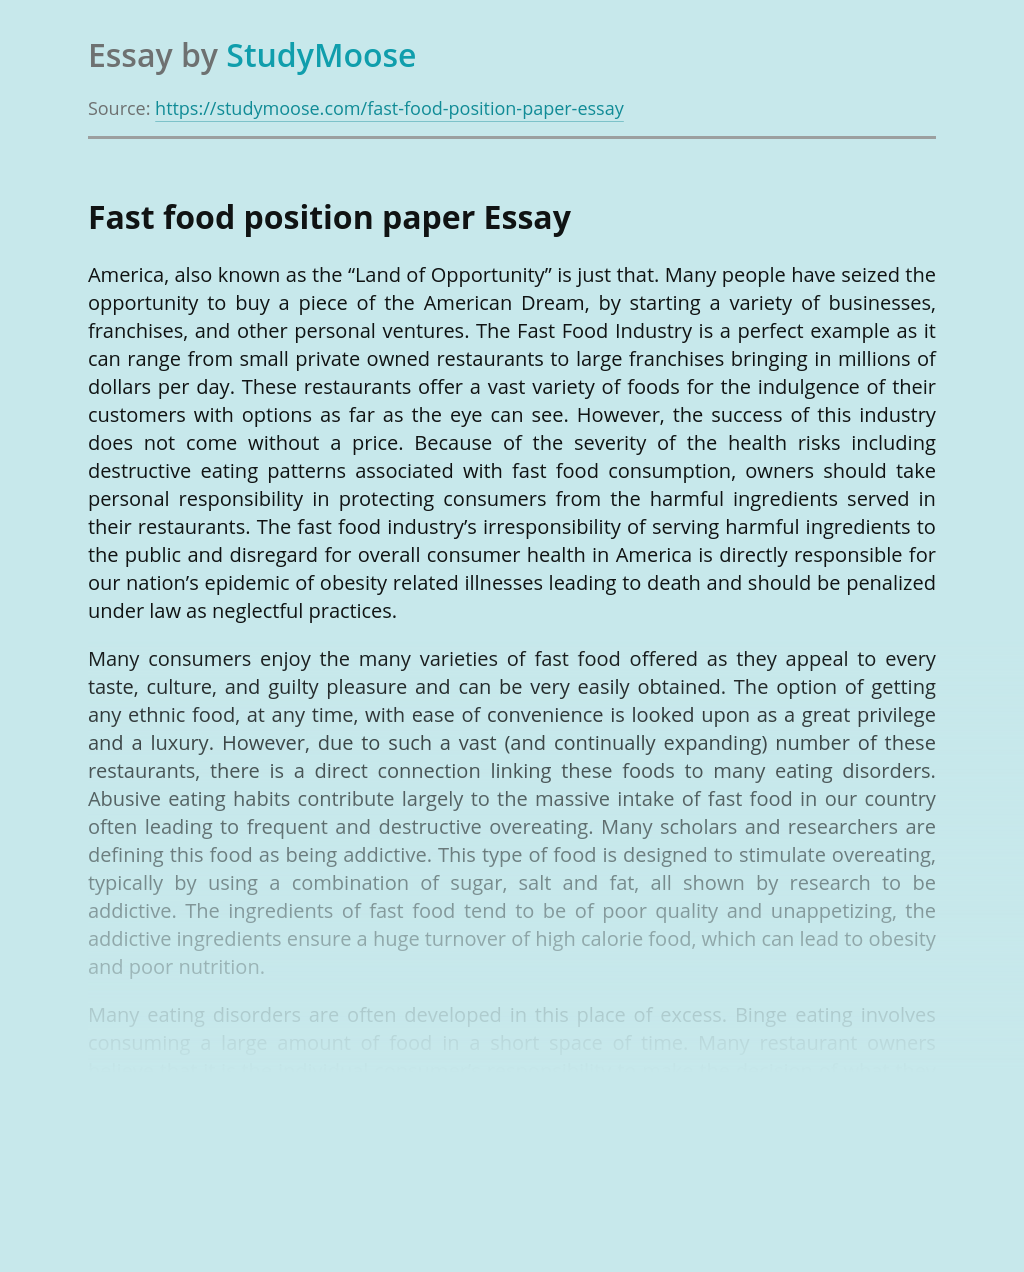 Fast food position paper Free Essay Example